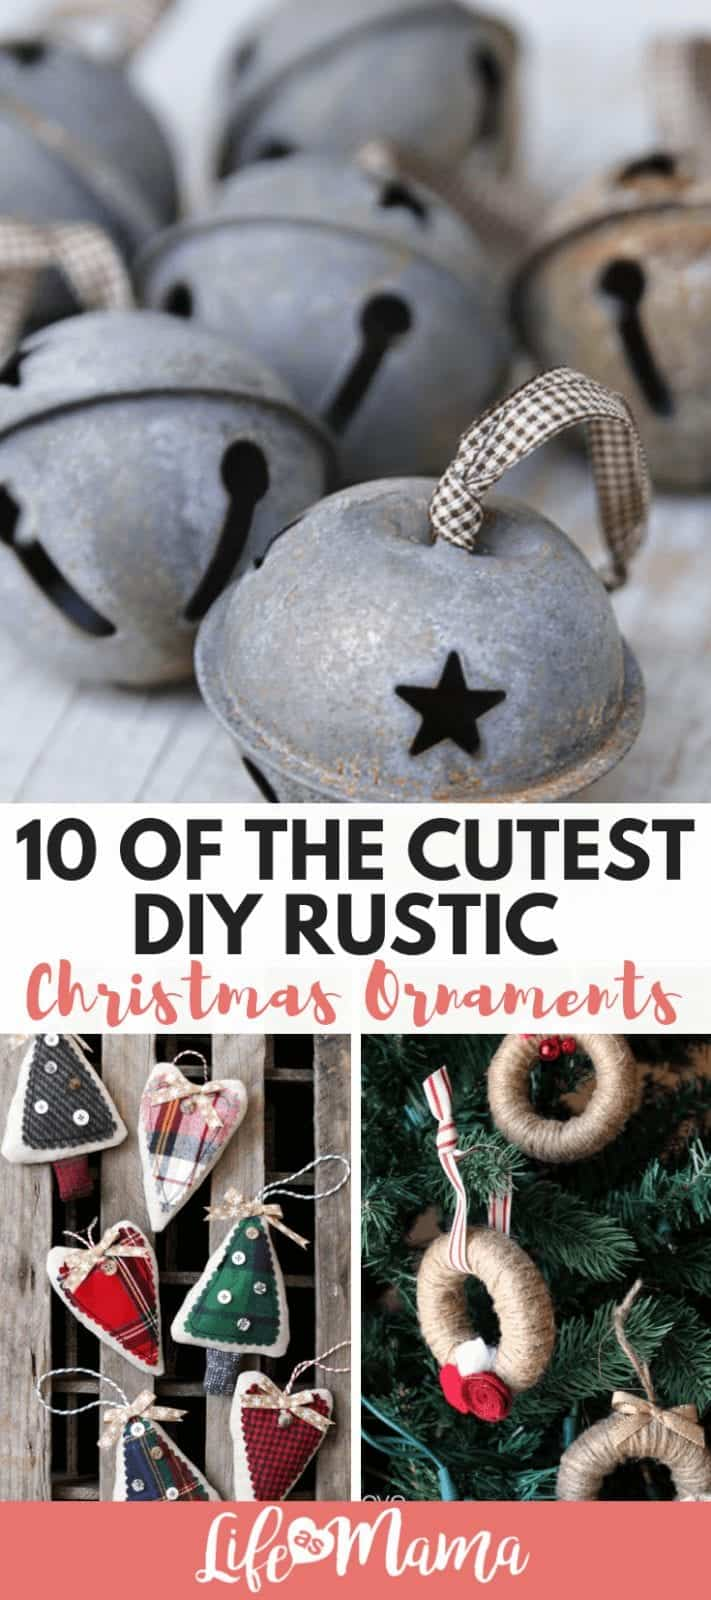 10 Of The Cutest DIY Rustic Christmas Ornaments